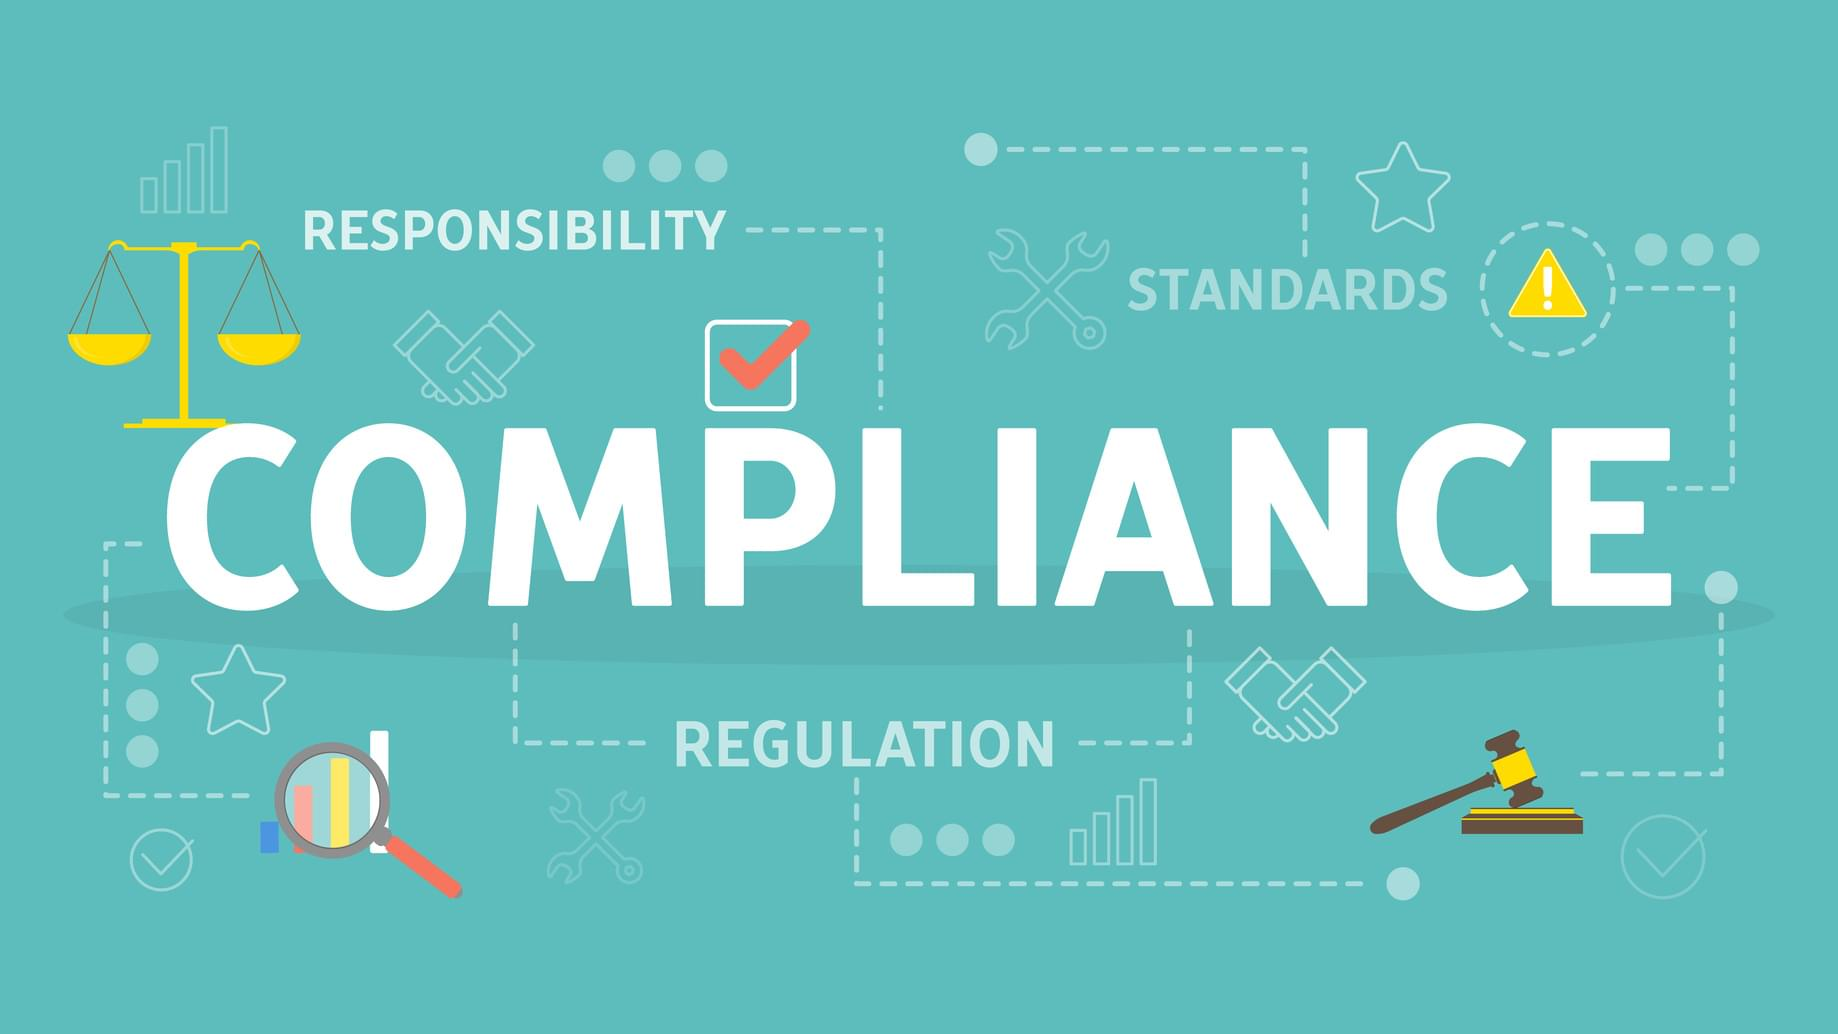 IT professionals have a role to play in corporate compliance programs.